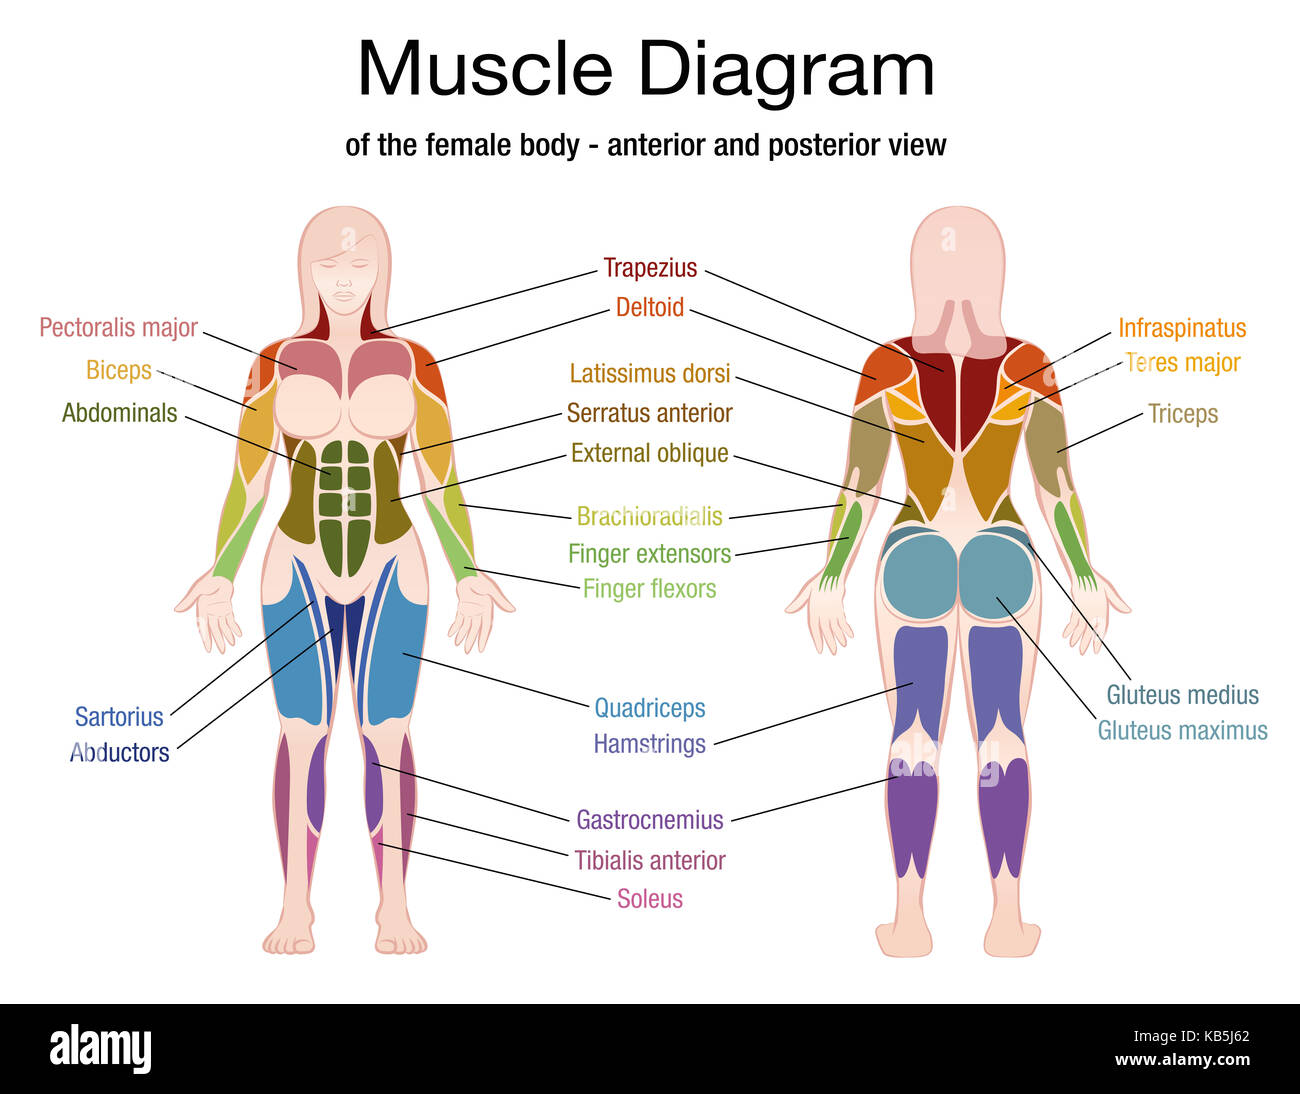 Human Body Muscles Diagram Stock Photos Amp Human Body Muscles Diagram Stock Images